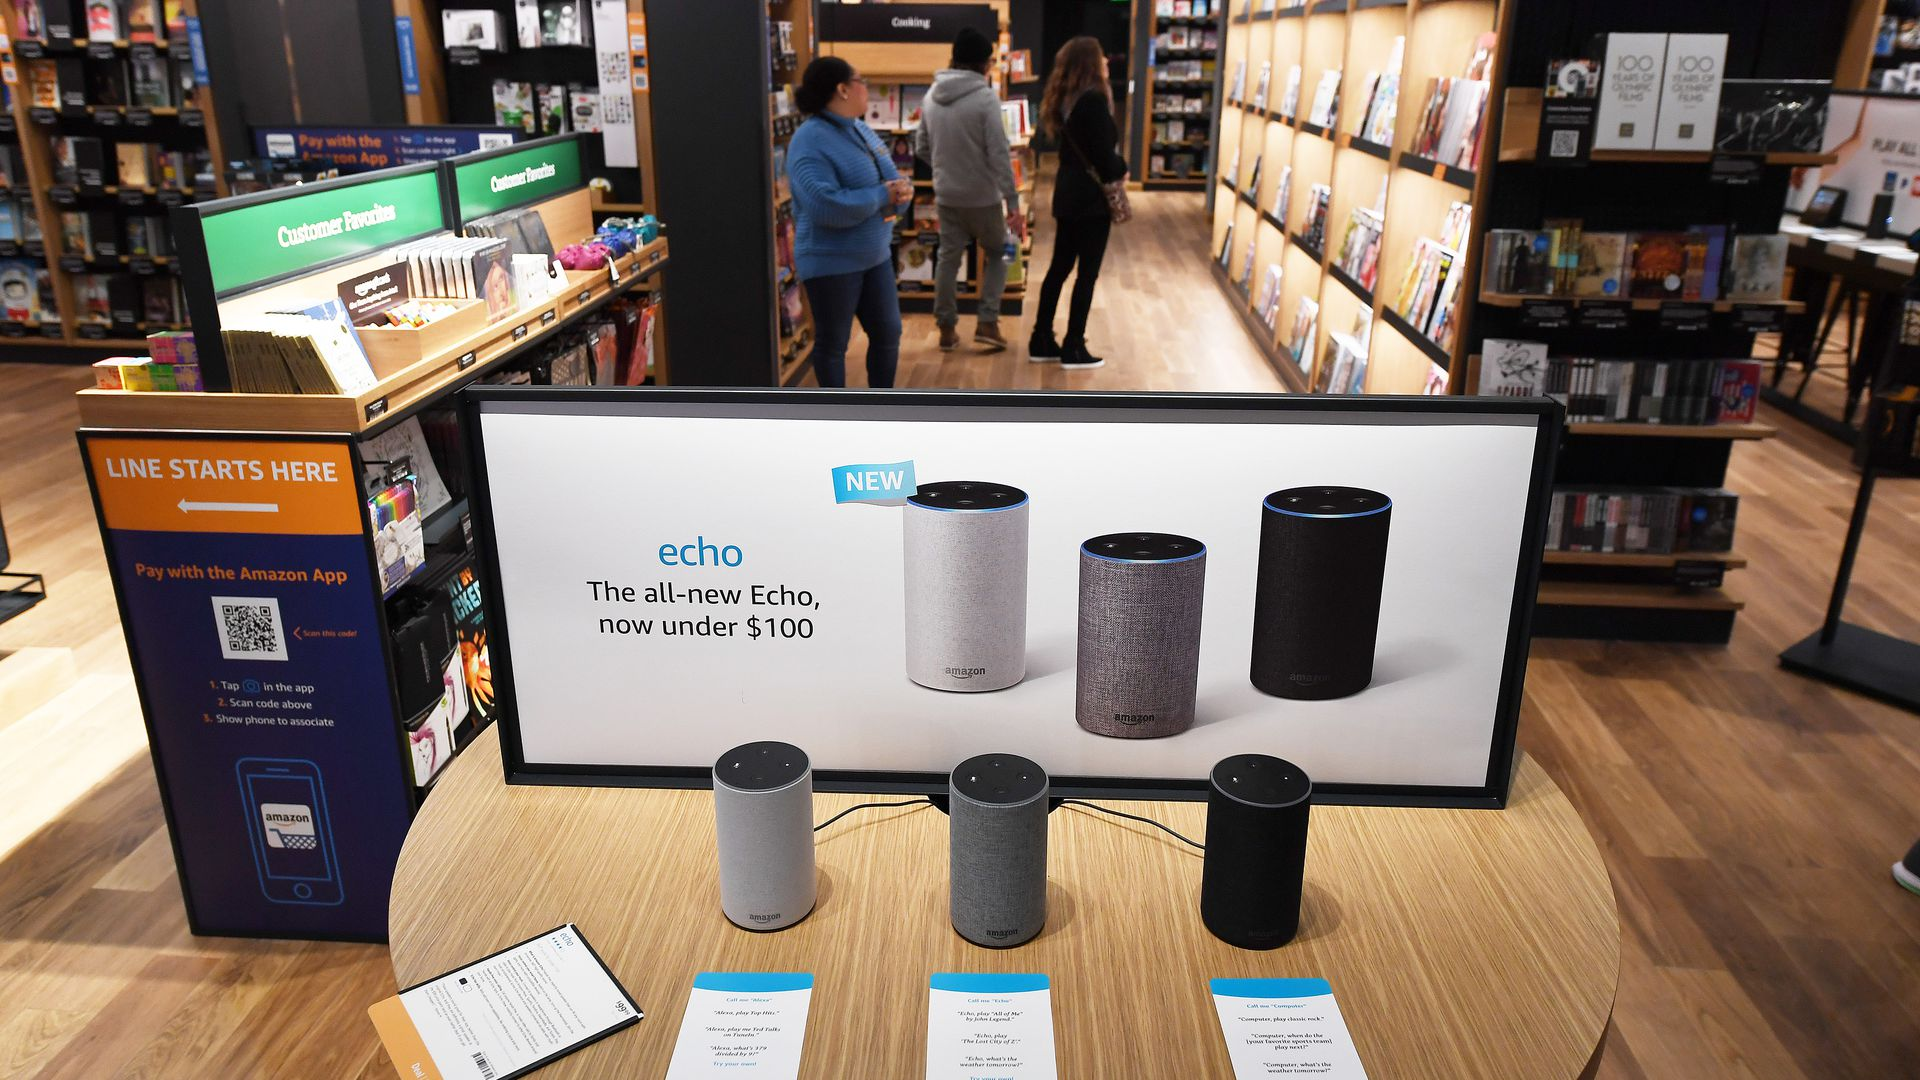 Photo of Amazon Echo devices on sale in an Amazon store.